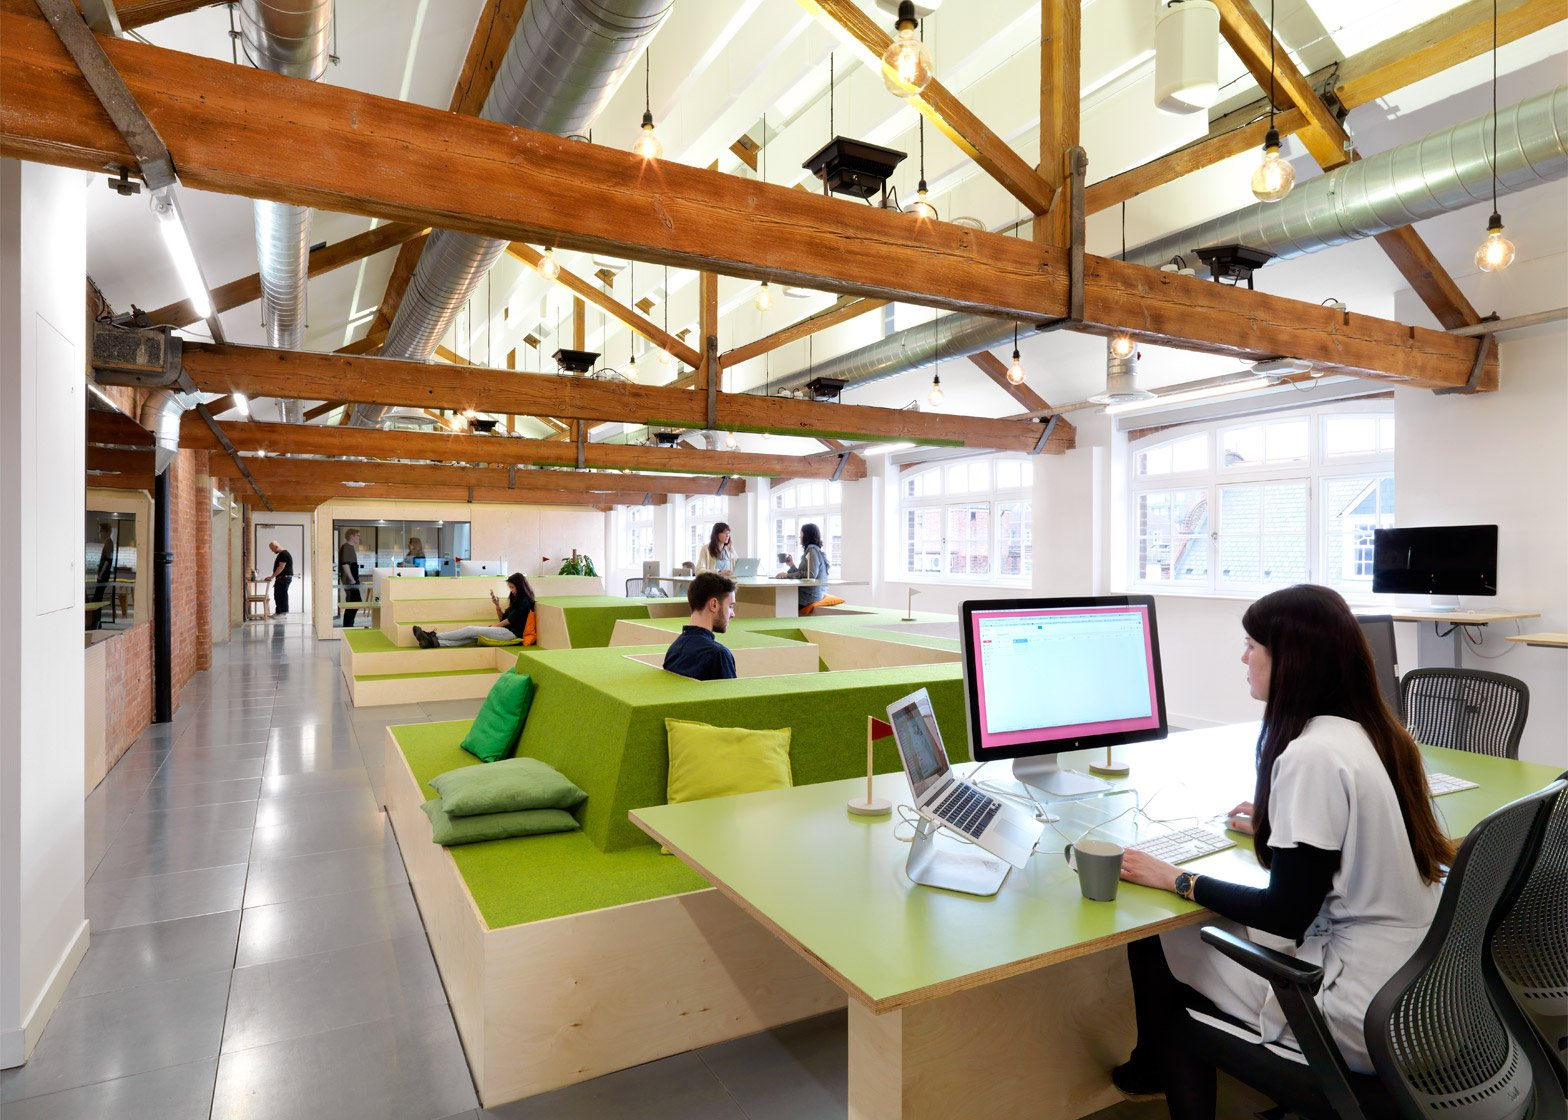 Desk For Office Design To Openplan Office Design Is Preventing Workers From Concentrating Studies Find Office Say